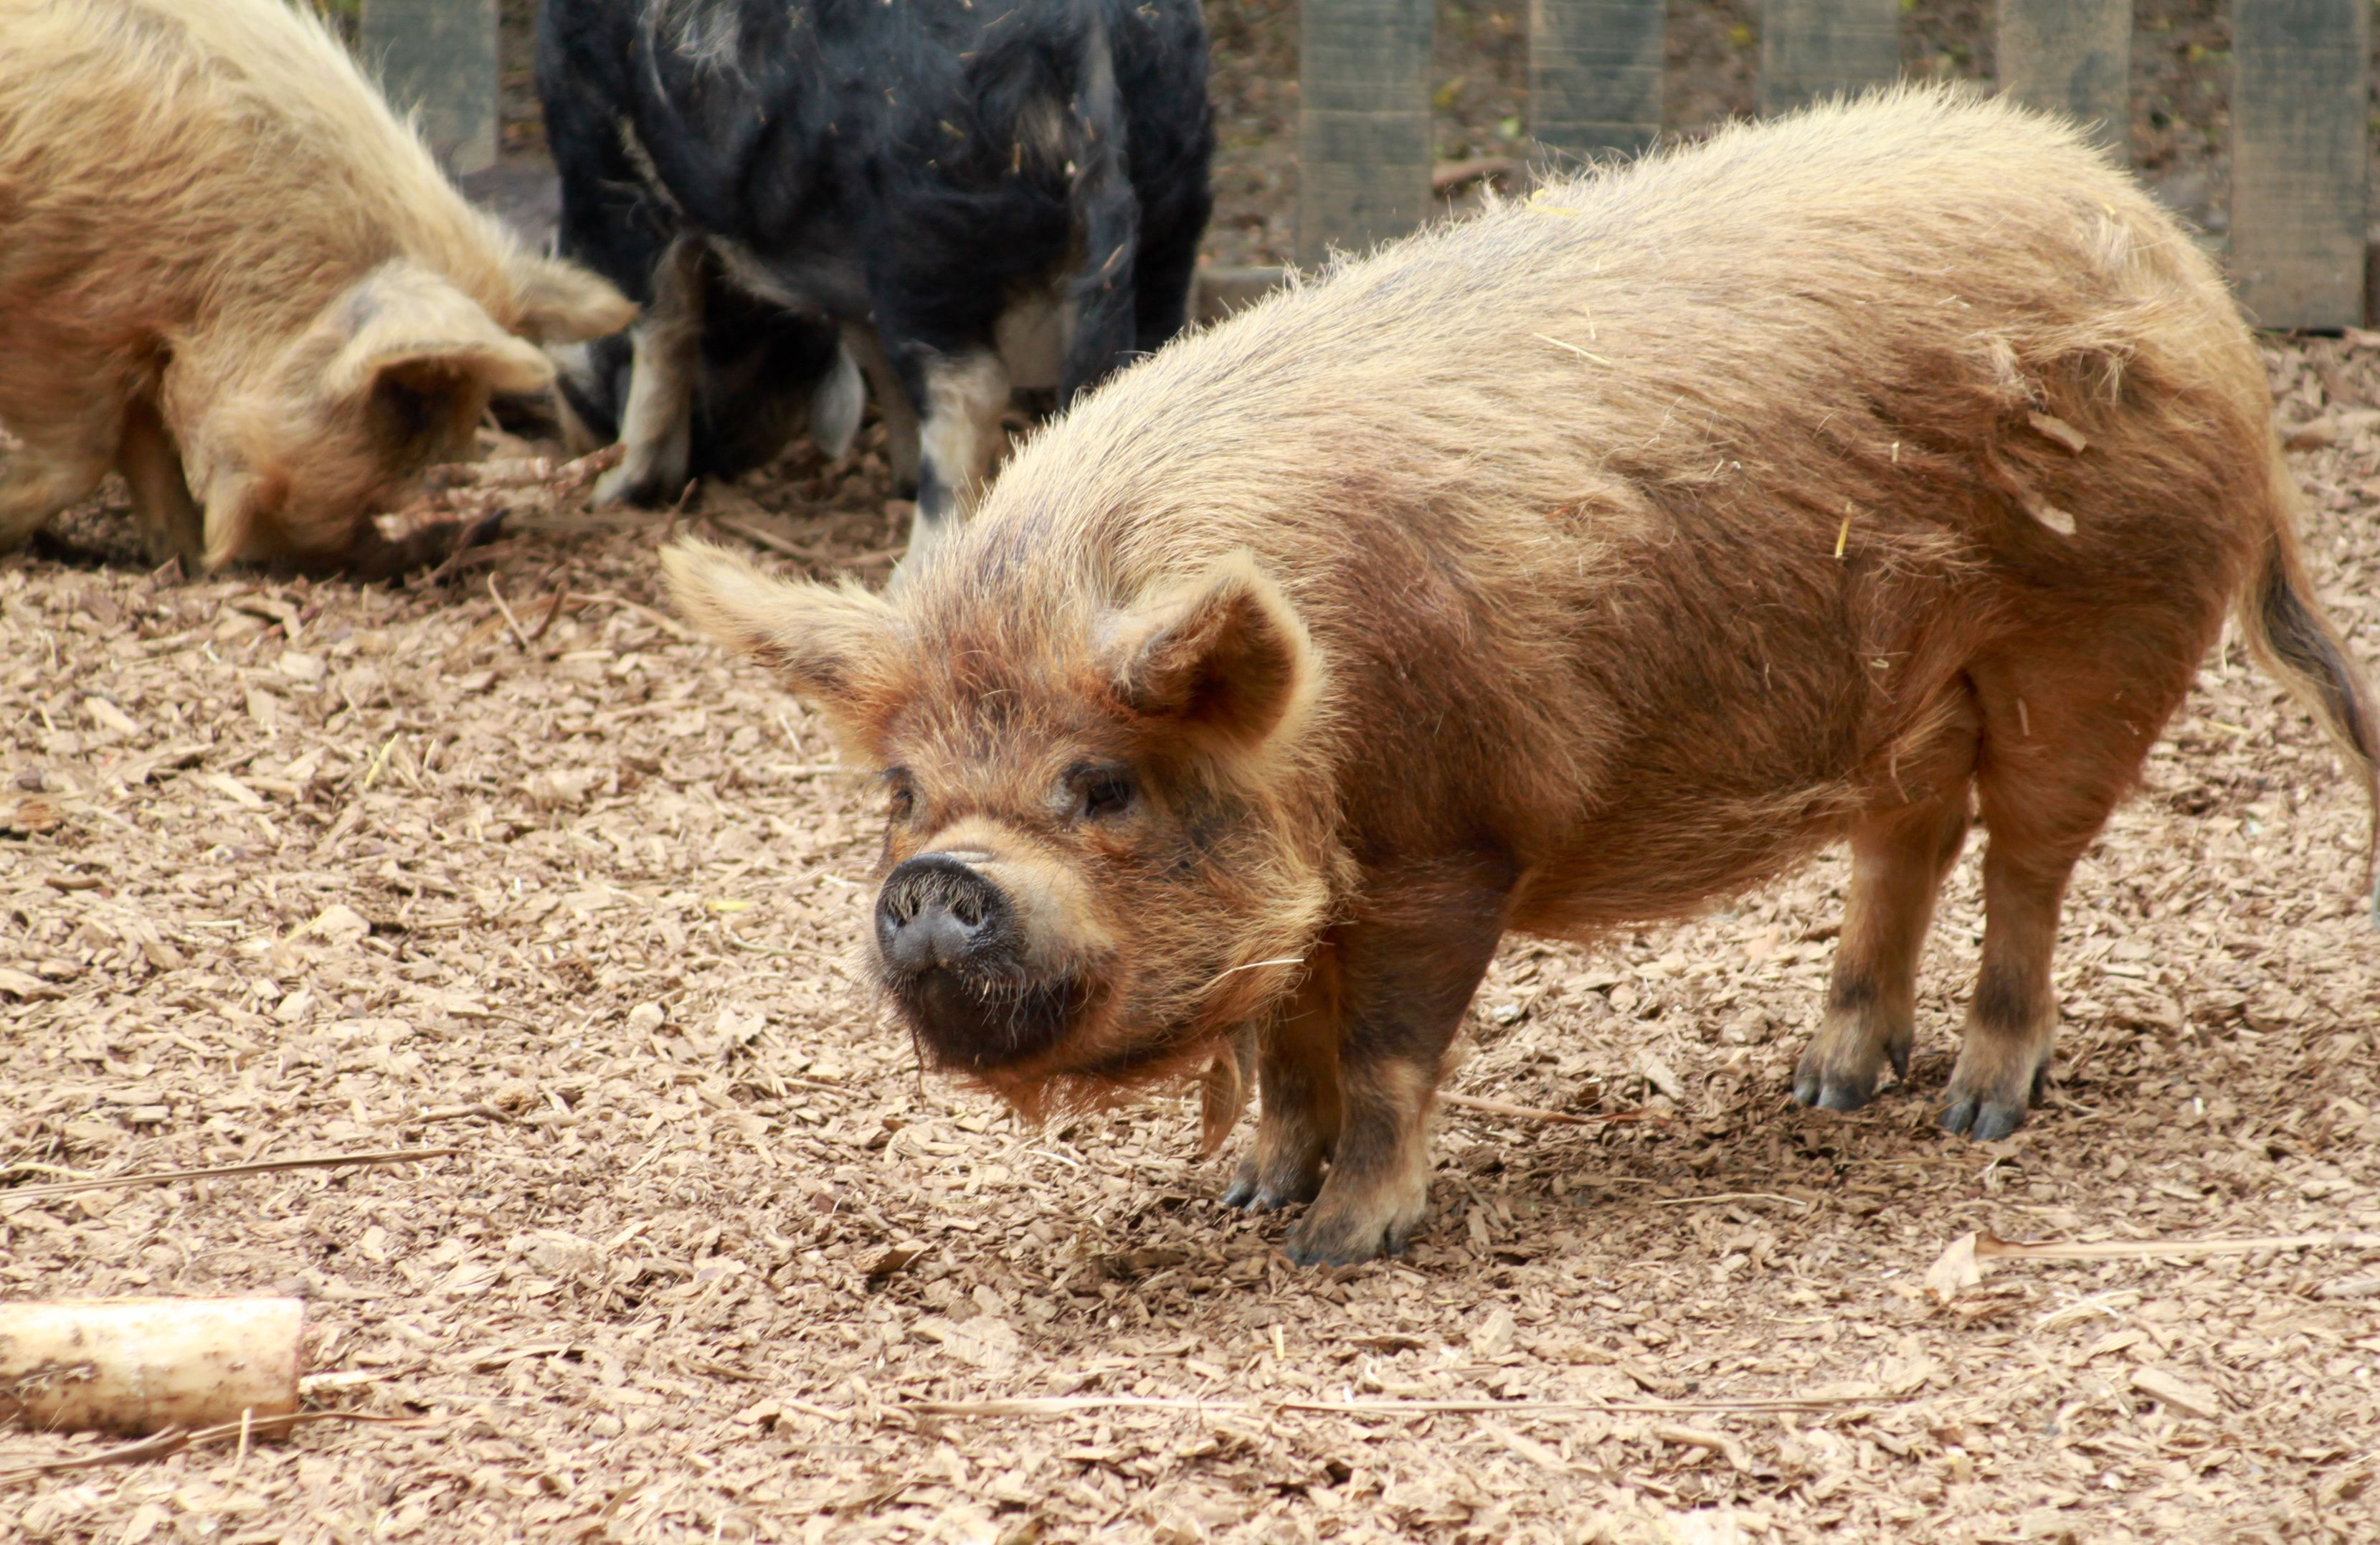 The kunekune is a small breed of domestic pig from New